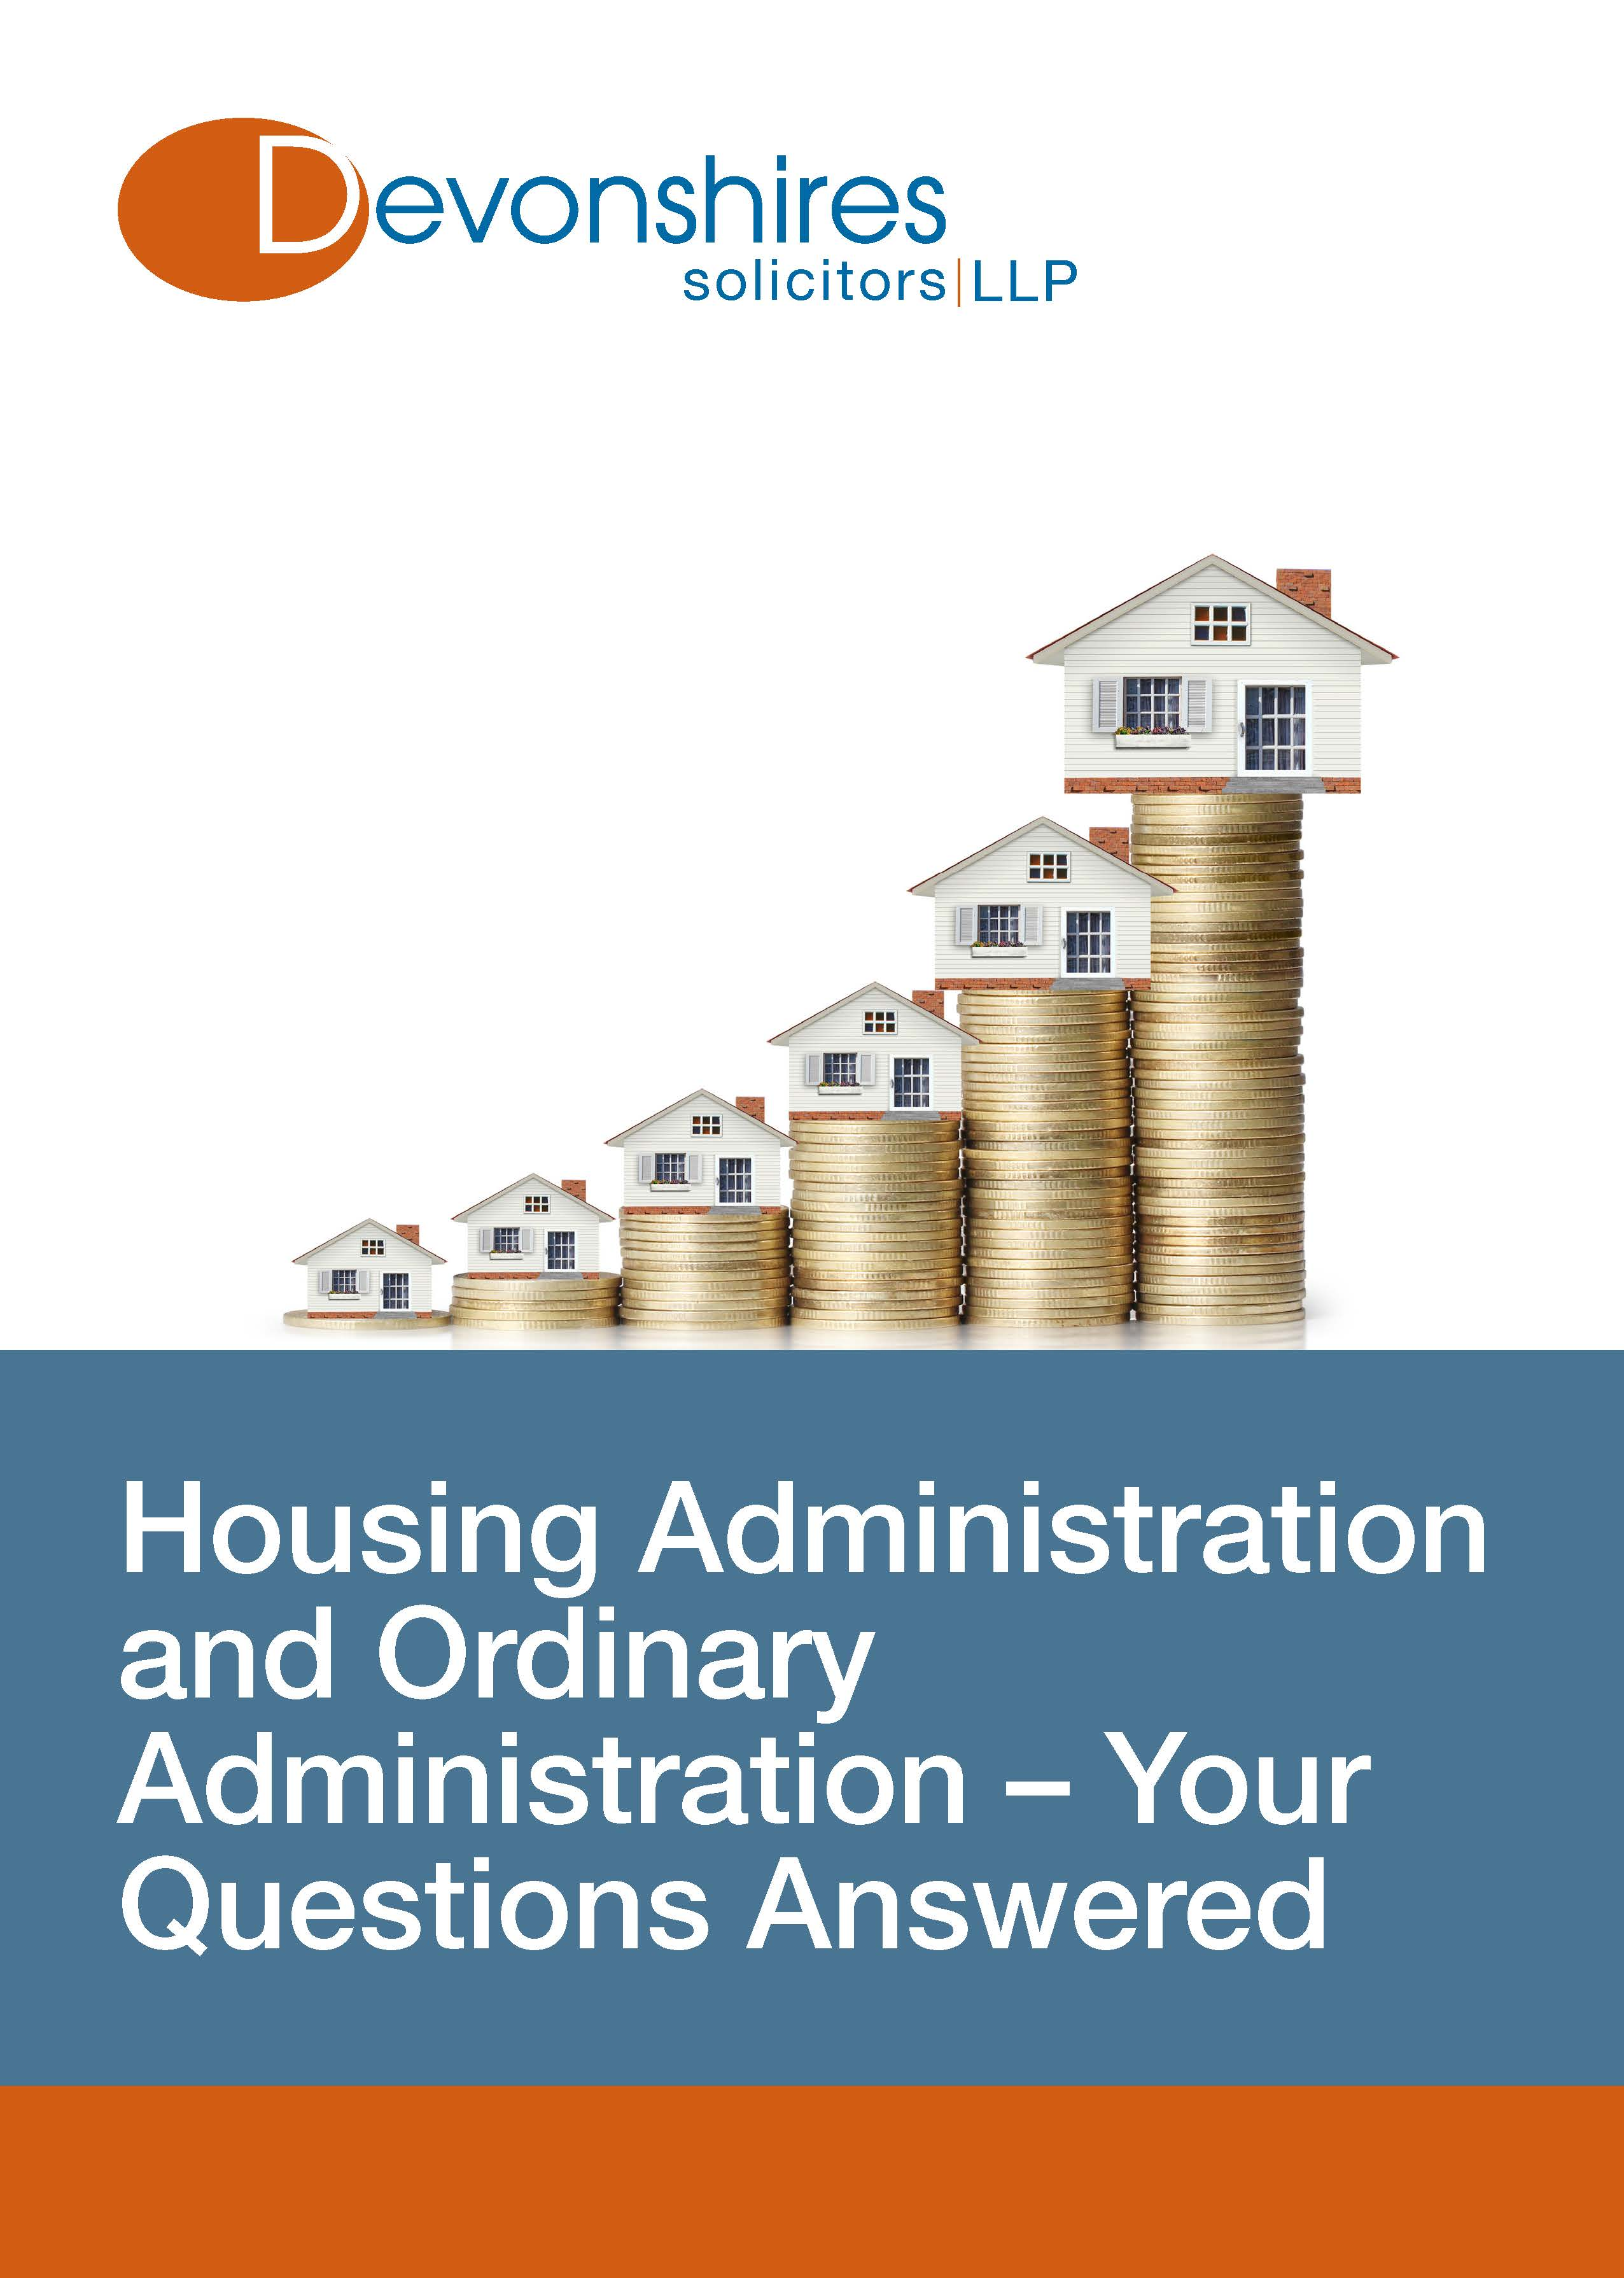 Housing Administration and ordinary administration - Your Questions Answered (1)_Page_1